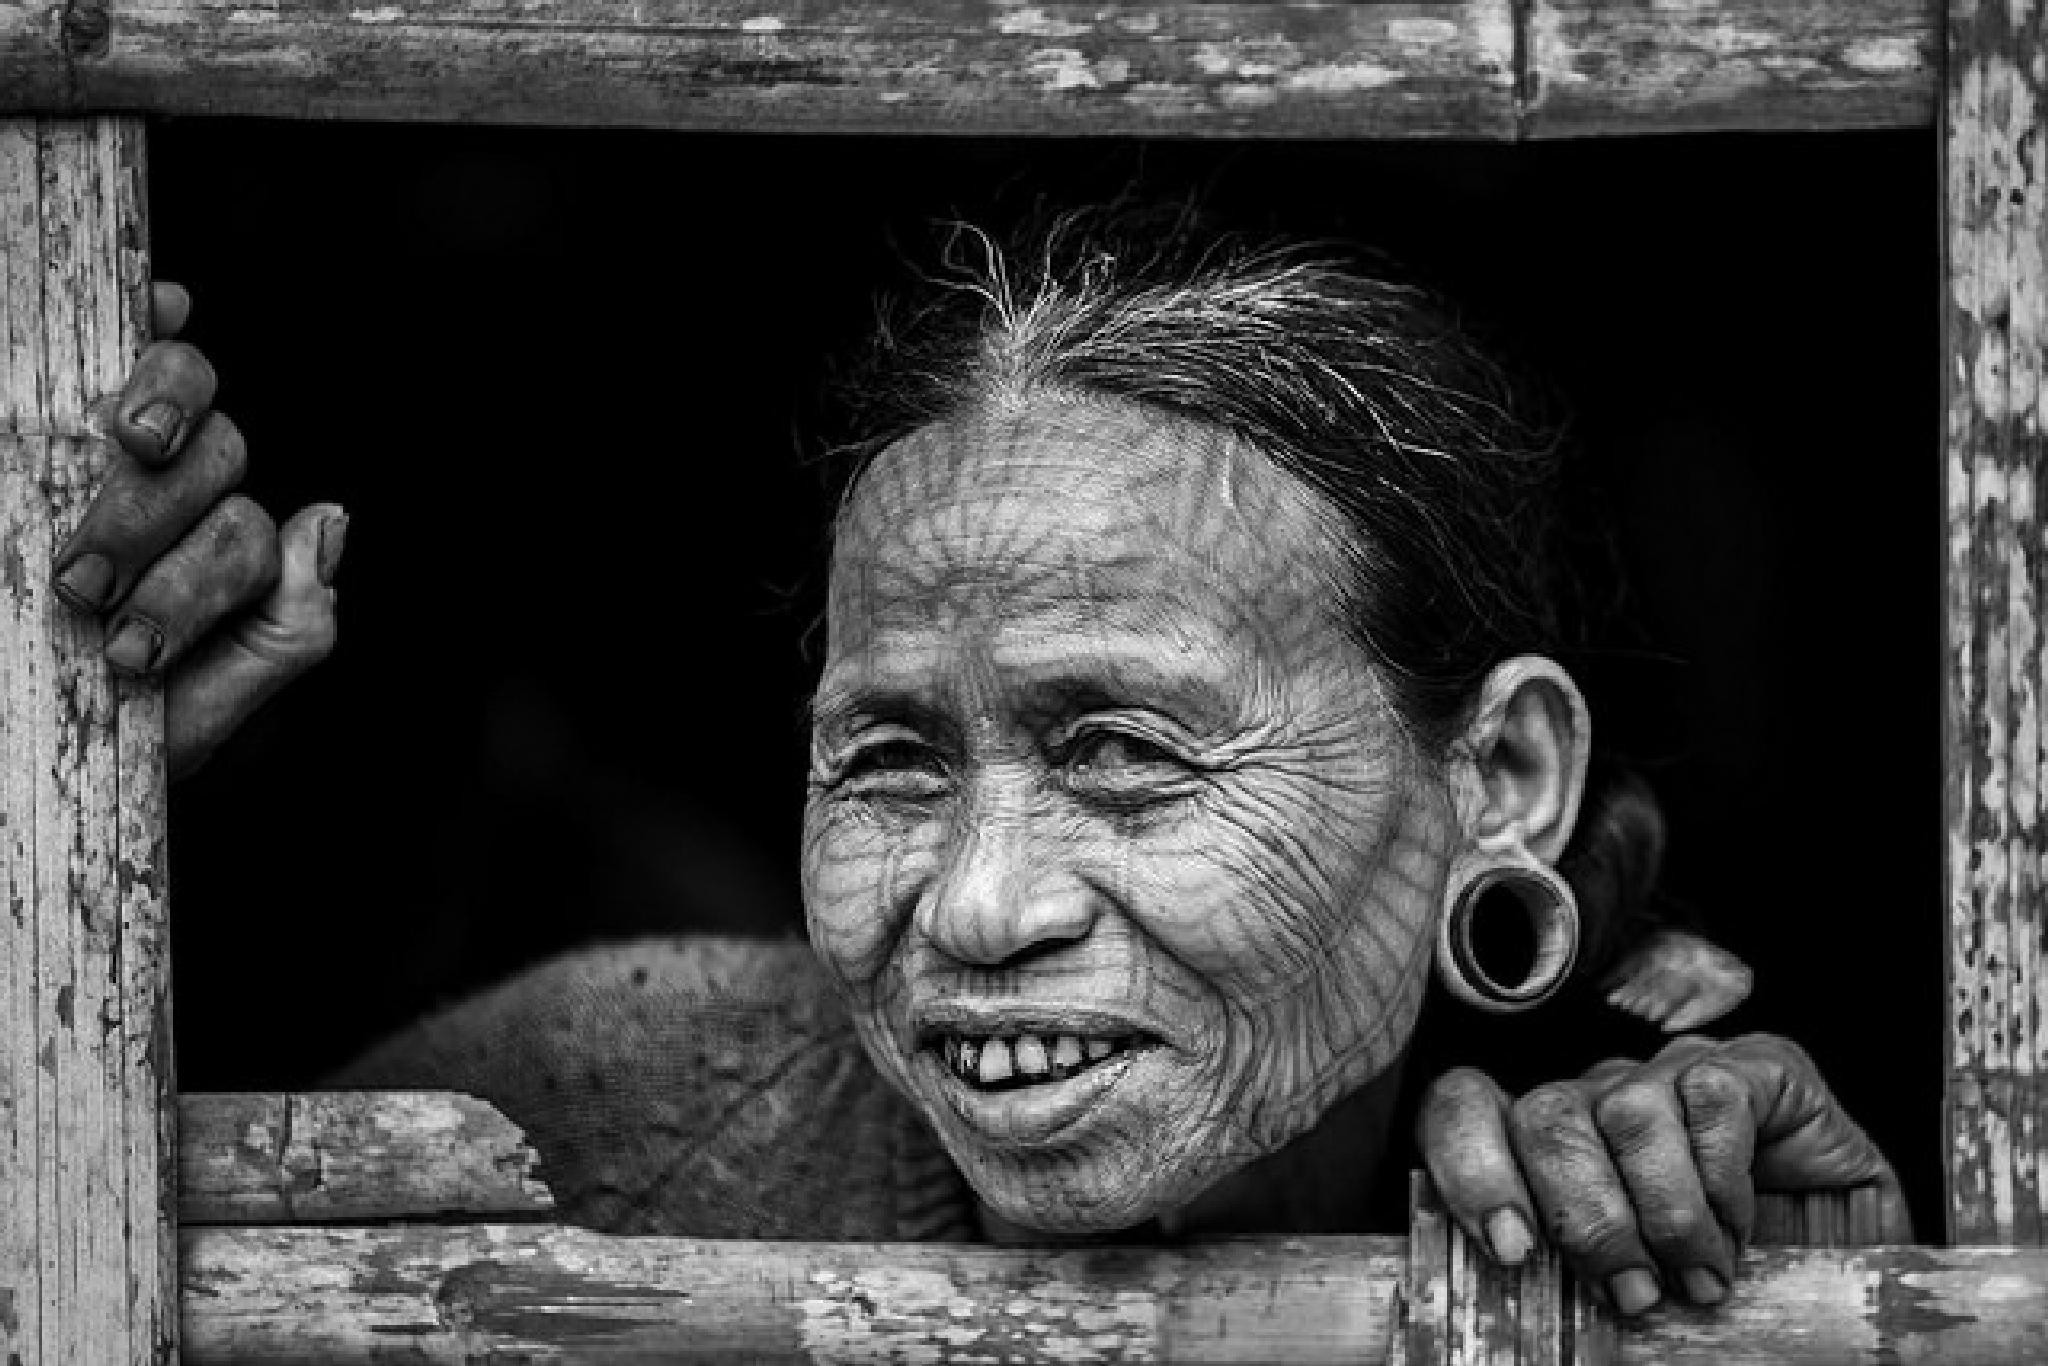 Myanmar People #24 by sparky4072